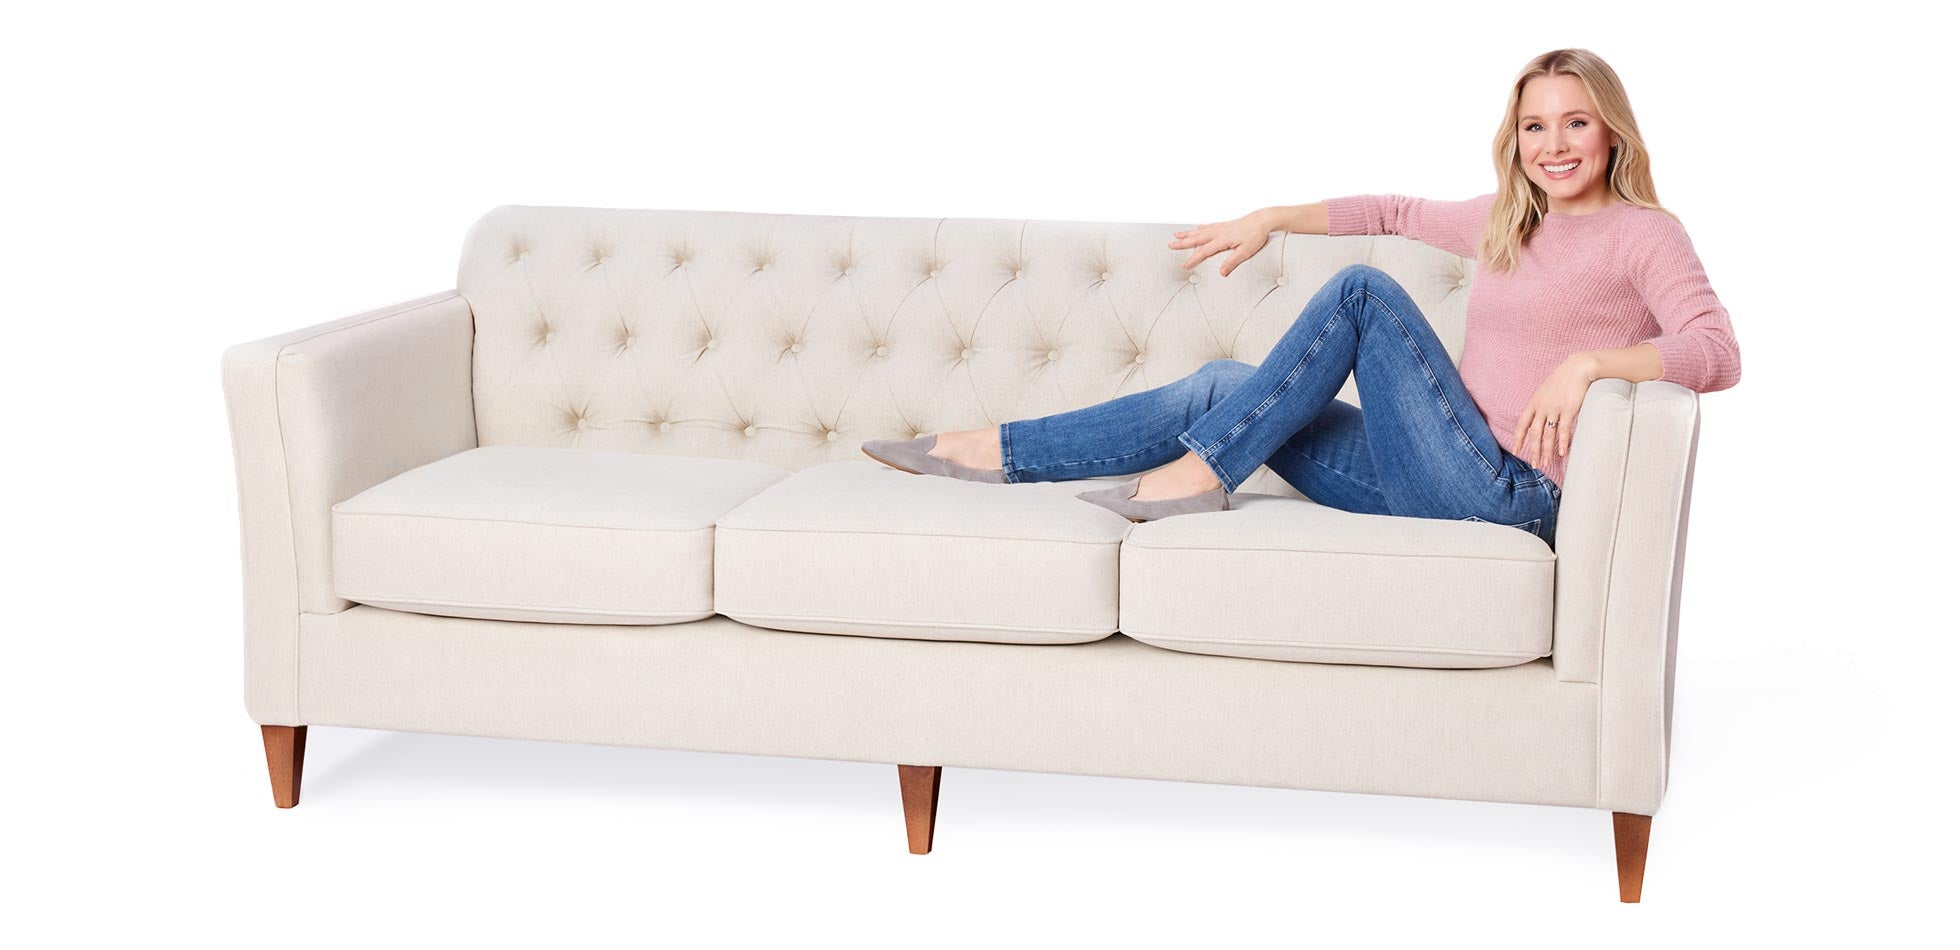 Sofas For Real Life With Kristen Bell